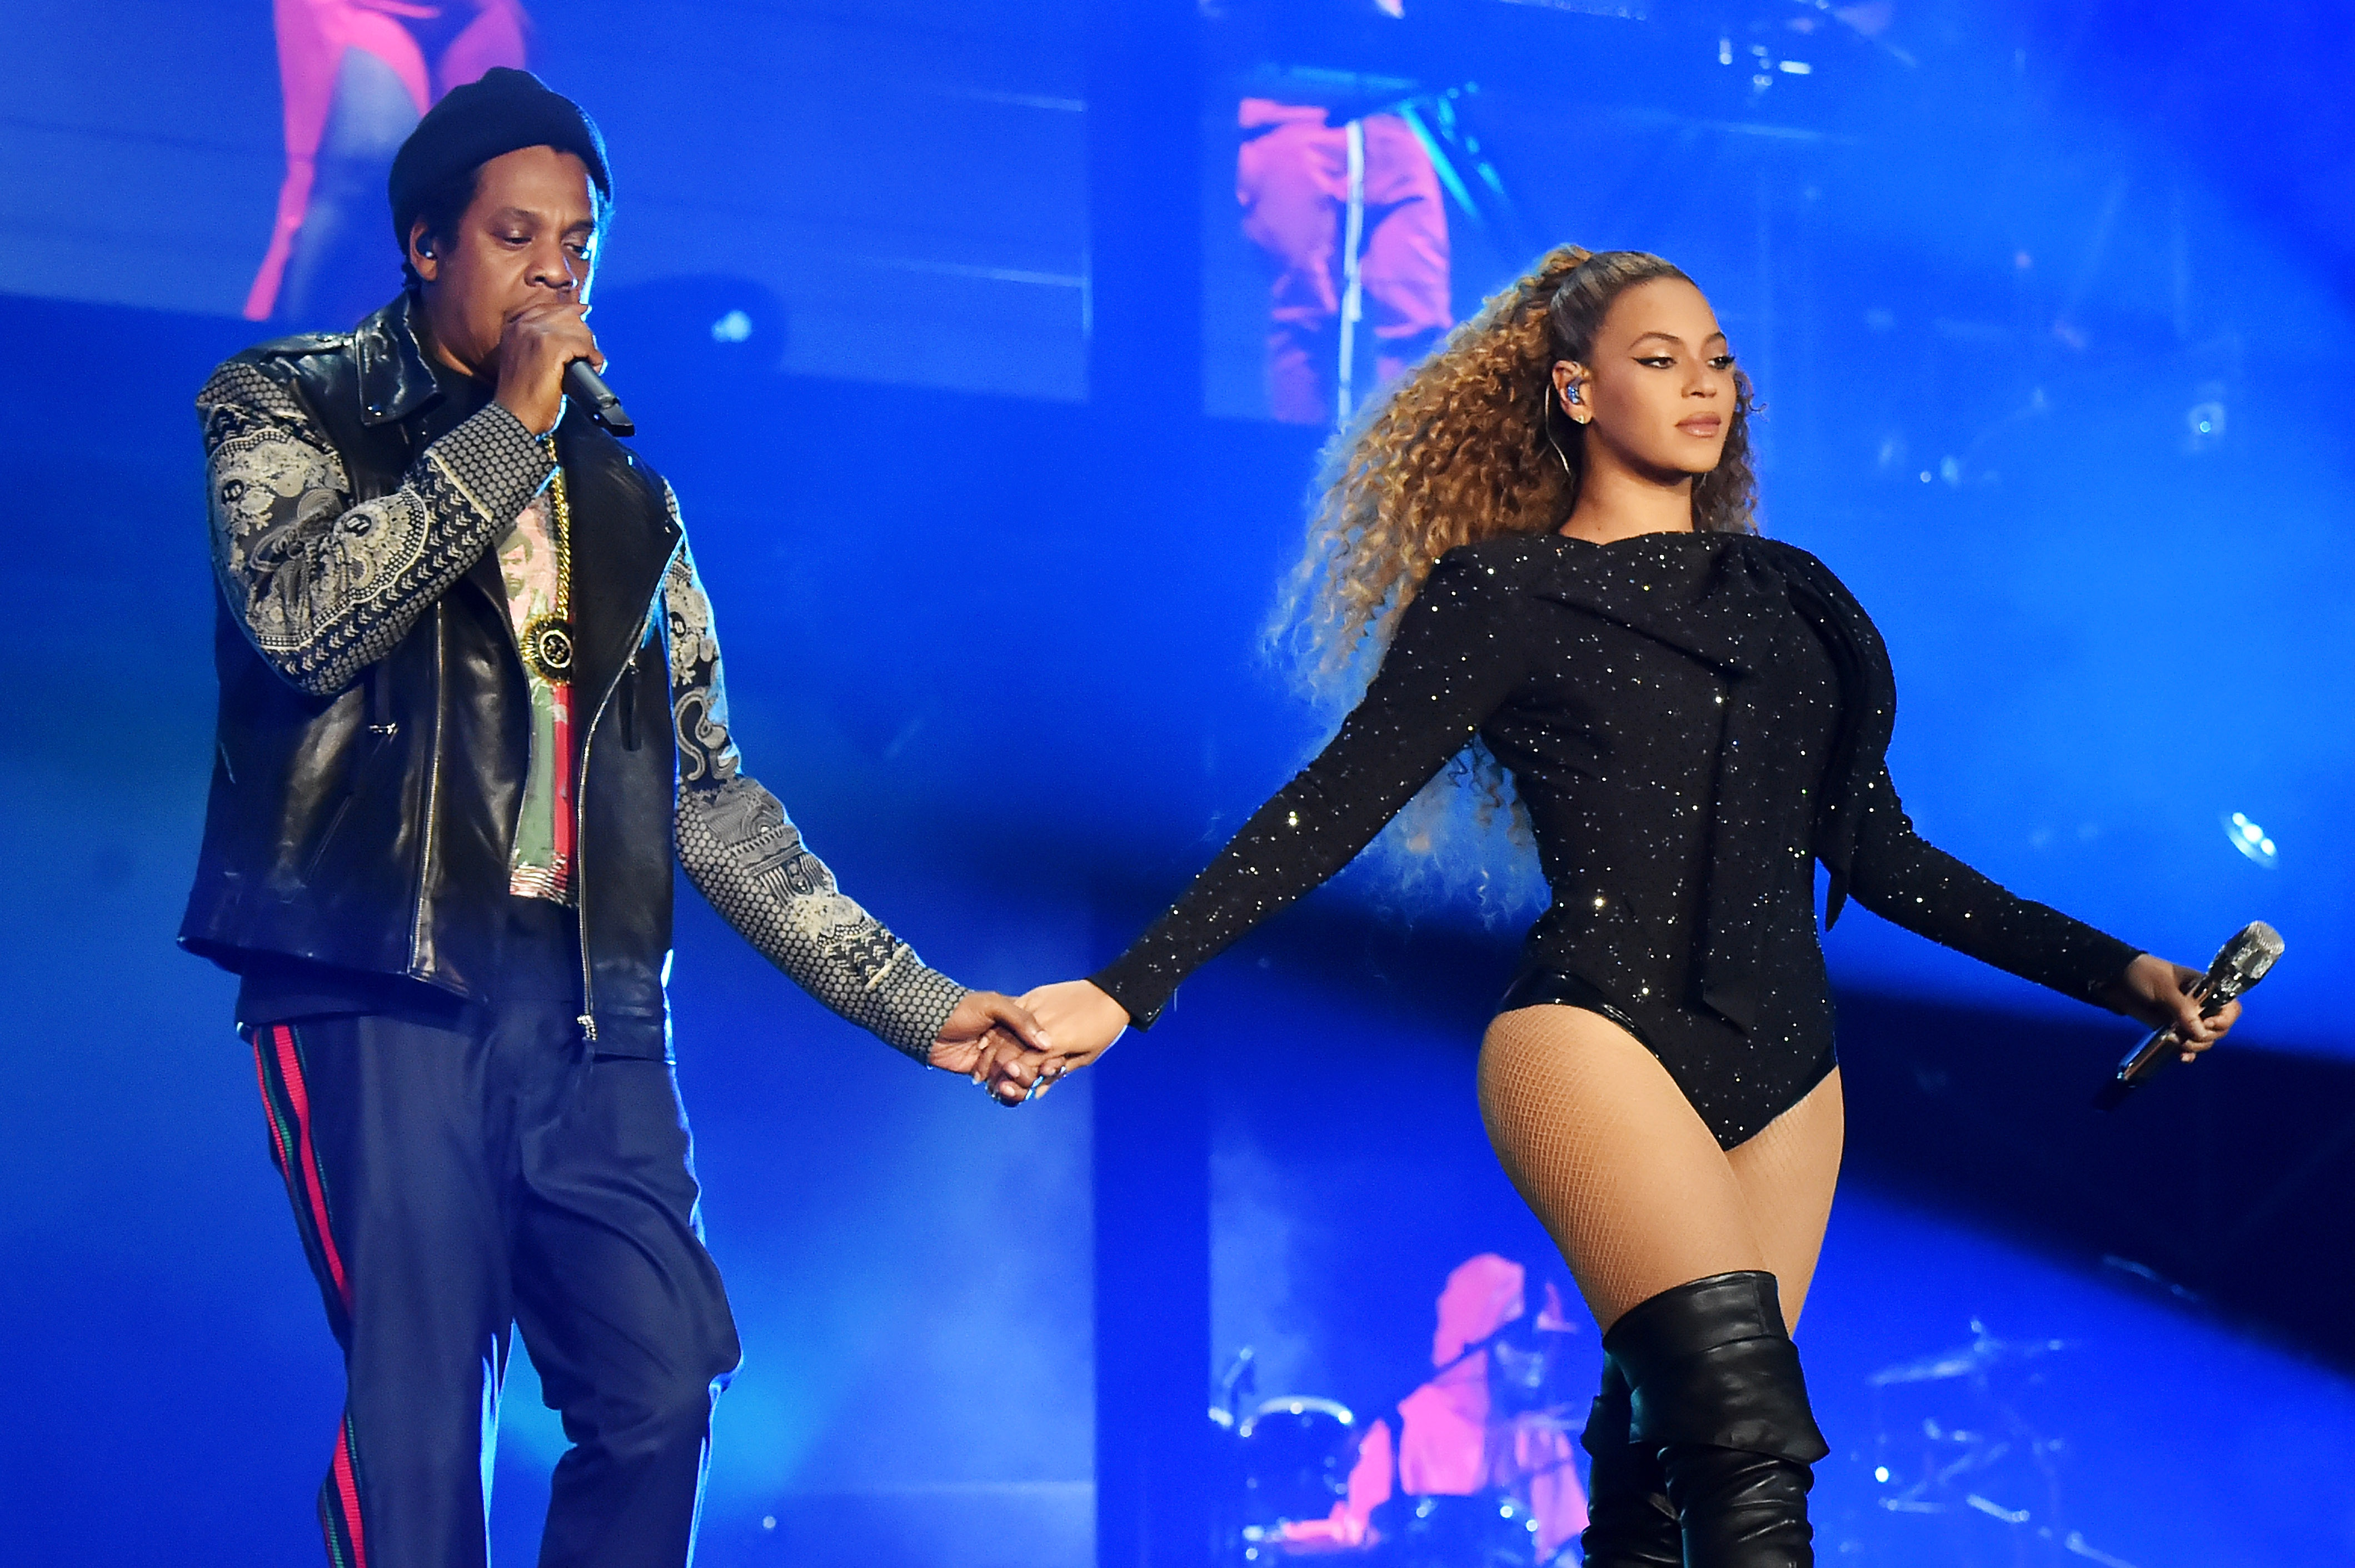 How To Download And Listen To Beyonce And Jay Z New Album Money